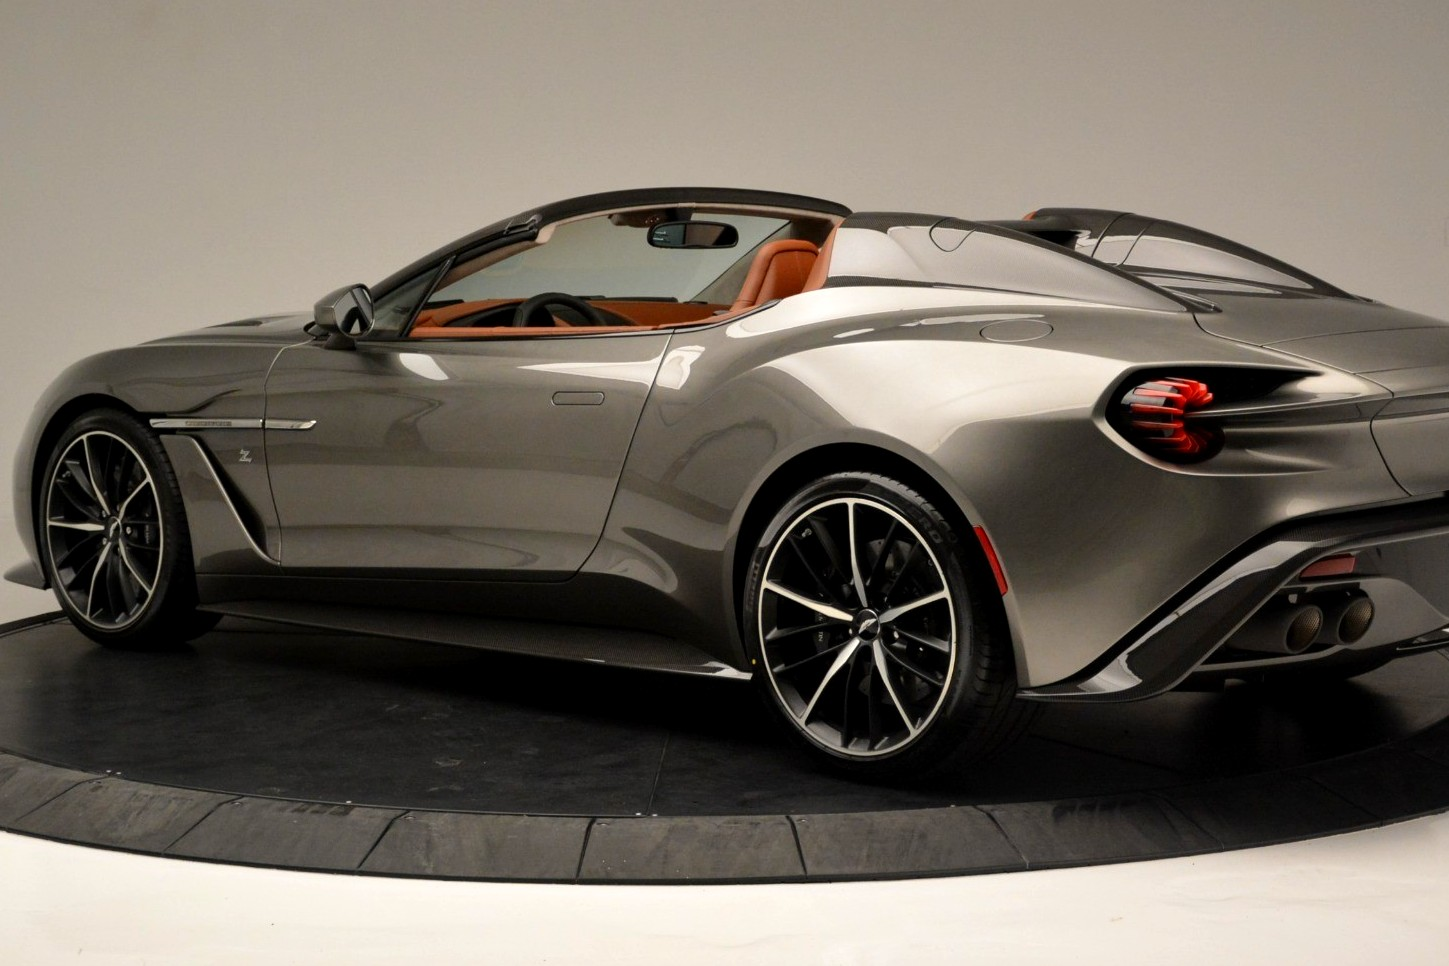 Best exotic cars of all times: 2018 Aston Martin Zagato Speedster, Greenwich, CT, USA, $1,550,000.